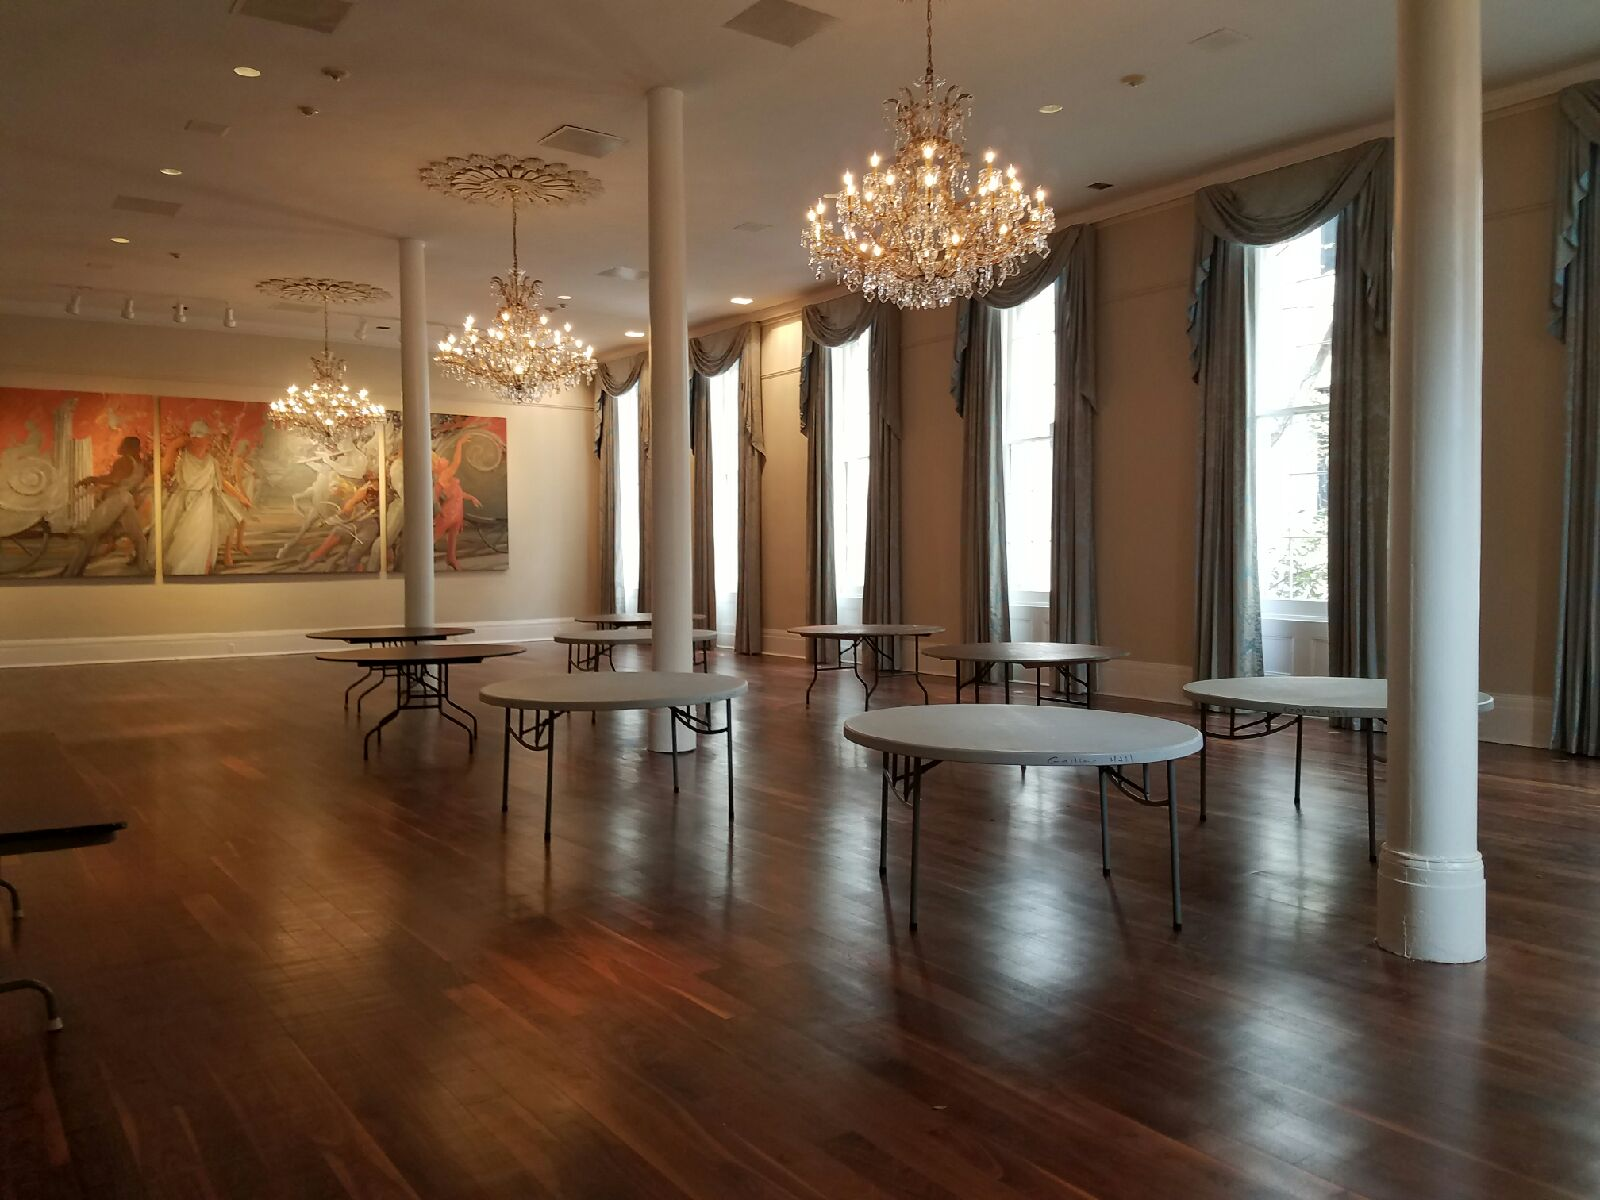 Historic Gallier Hall Ballroom